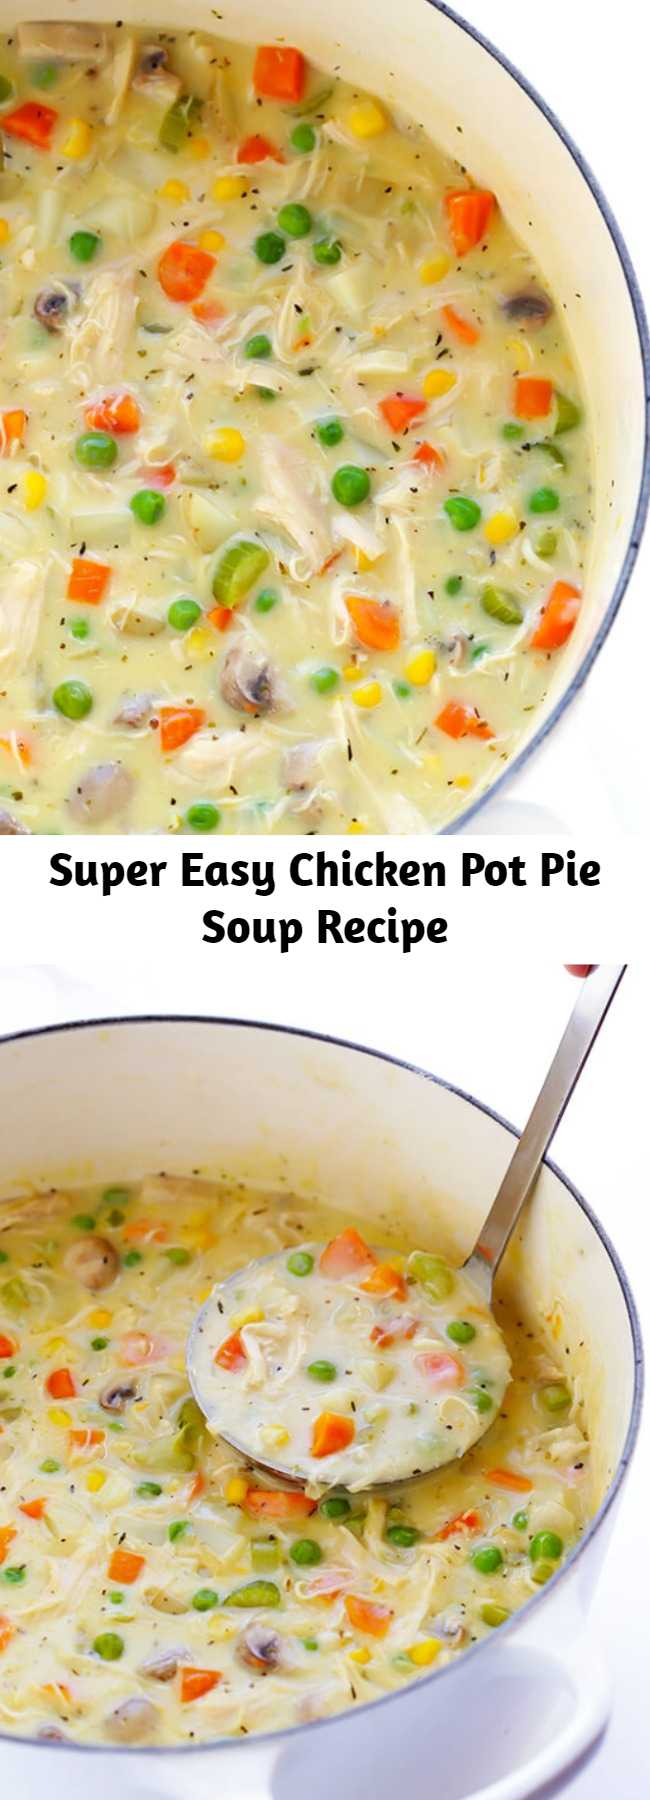 Super Easy Chicken Pot Pie Soup Recipe - This Chicken Pot Pie Soup recipe is simple to make, lightened up with a few easy tweaks, and deliciously rich and creamy.